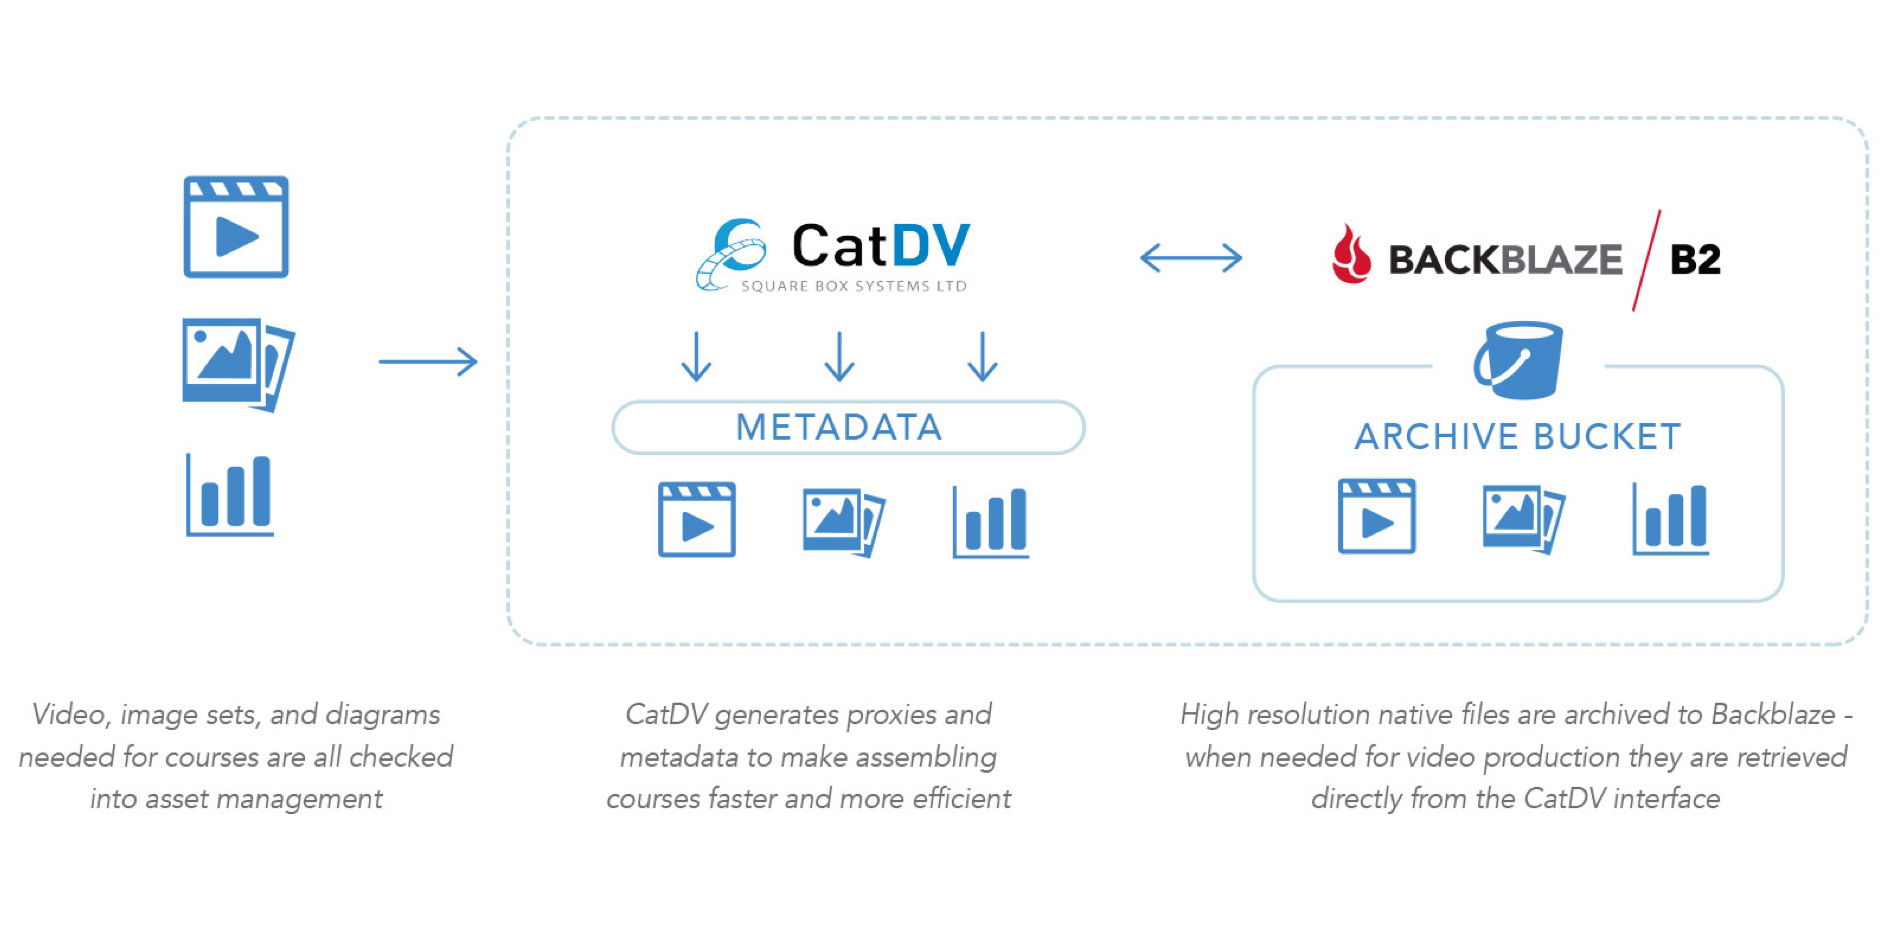 video production workflow using CatDV with Backblaze B2 cloud storage